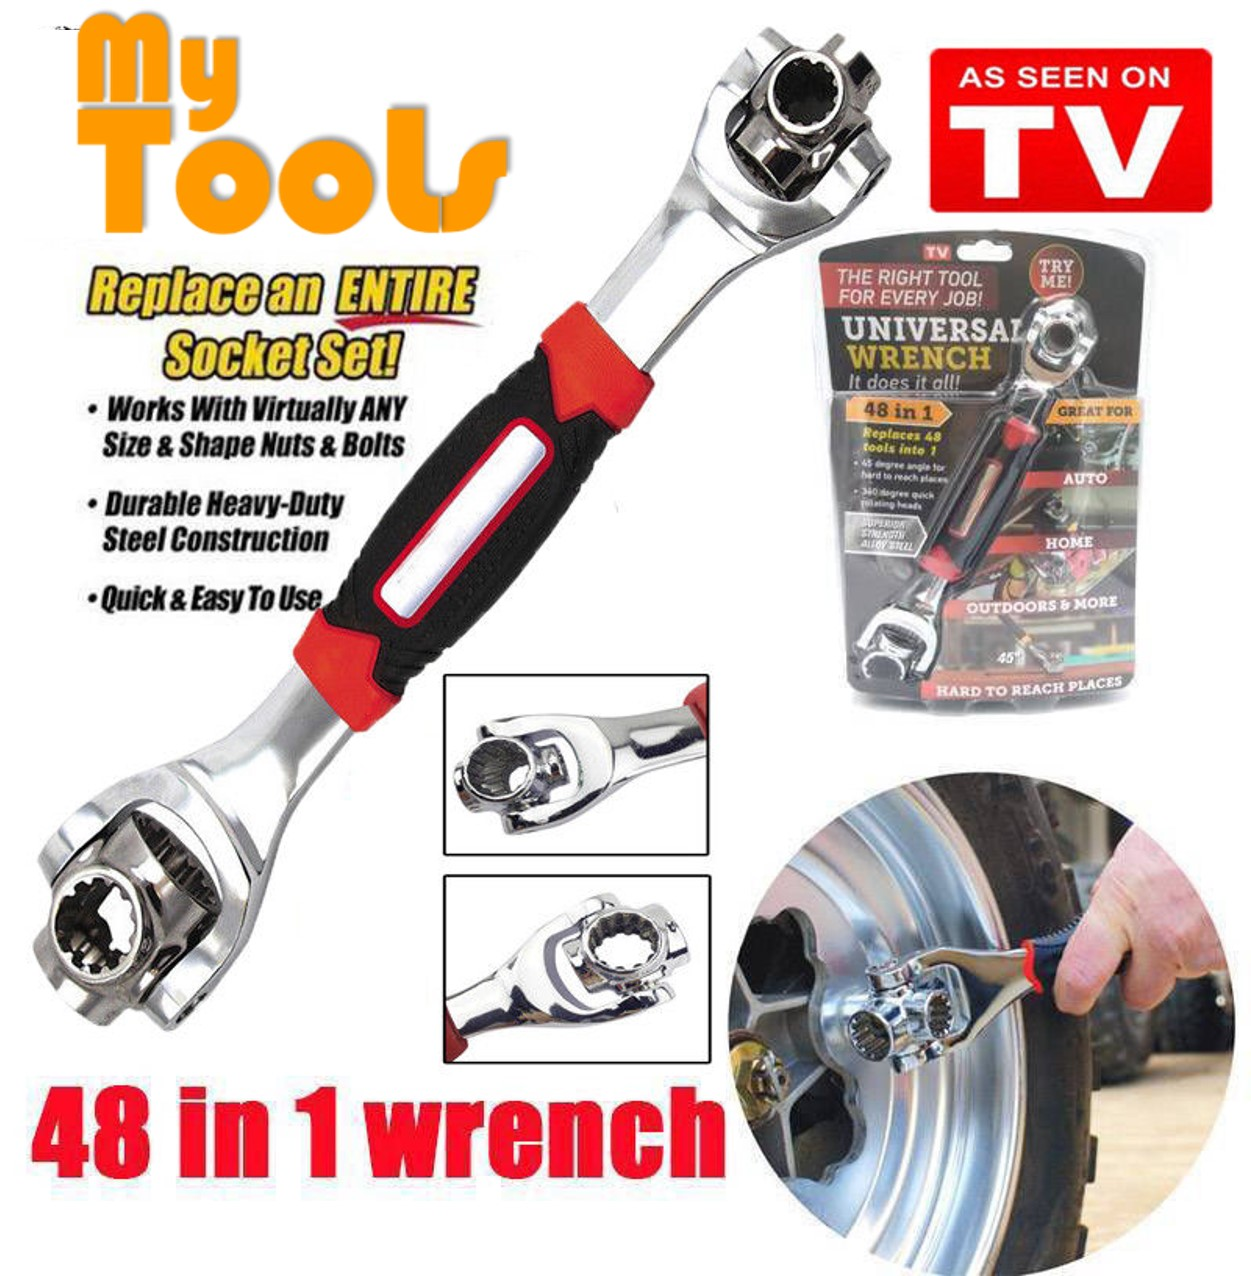 Tiger Wrench 48 in 1 Tools Socket Wrench Spline Bolts Torx 360 Degree 6-Point Universal